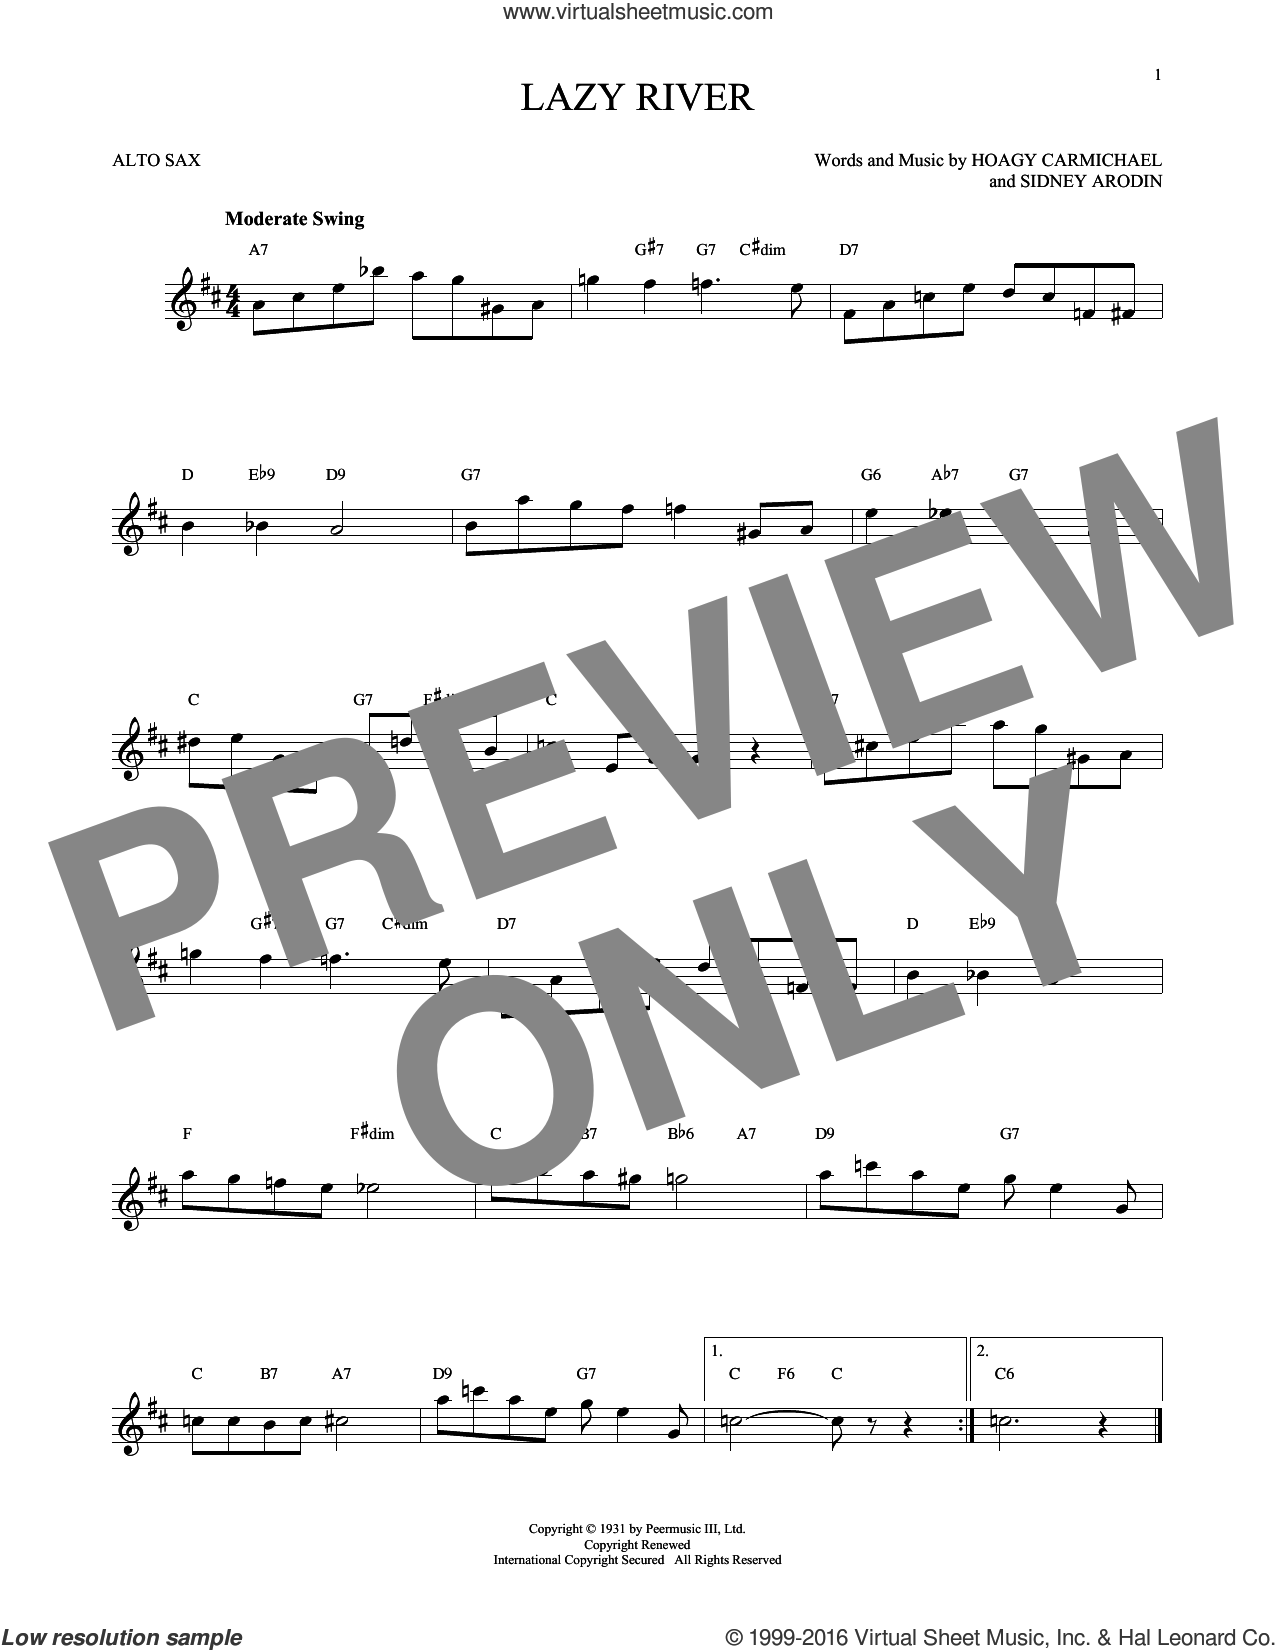 Lazy River sheet music for alto saxophone solo by Hoagy Carmichael, Bobby Darin and Sidney Arodin, intermediate skill level